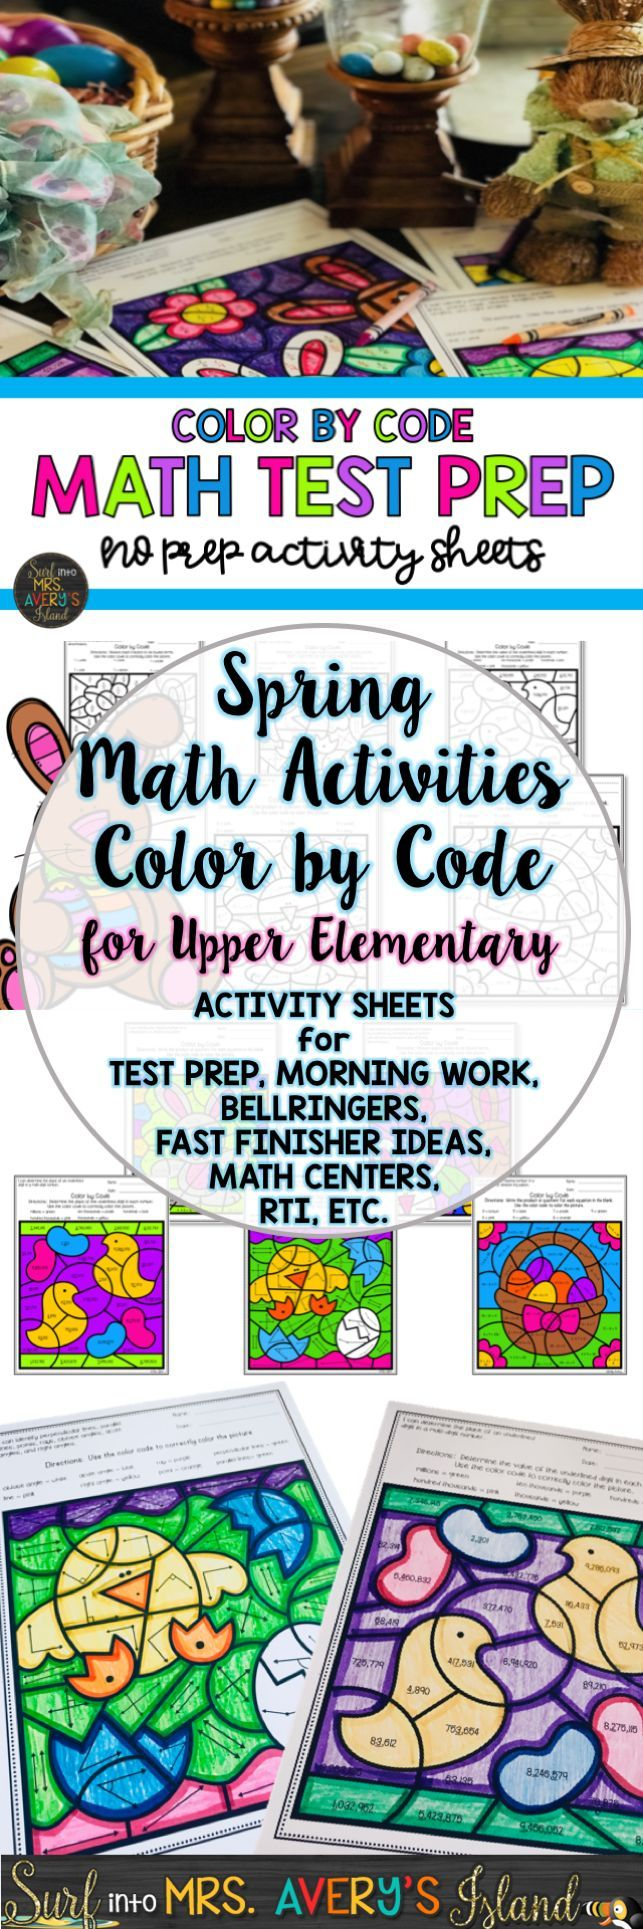 Spring Color by Code Math Test Prep | TPT K-2 Math | Pinterest ...